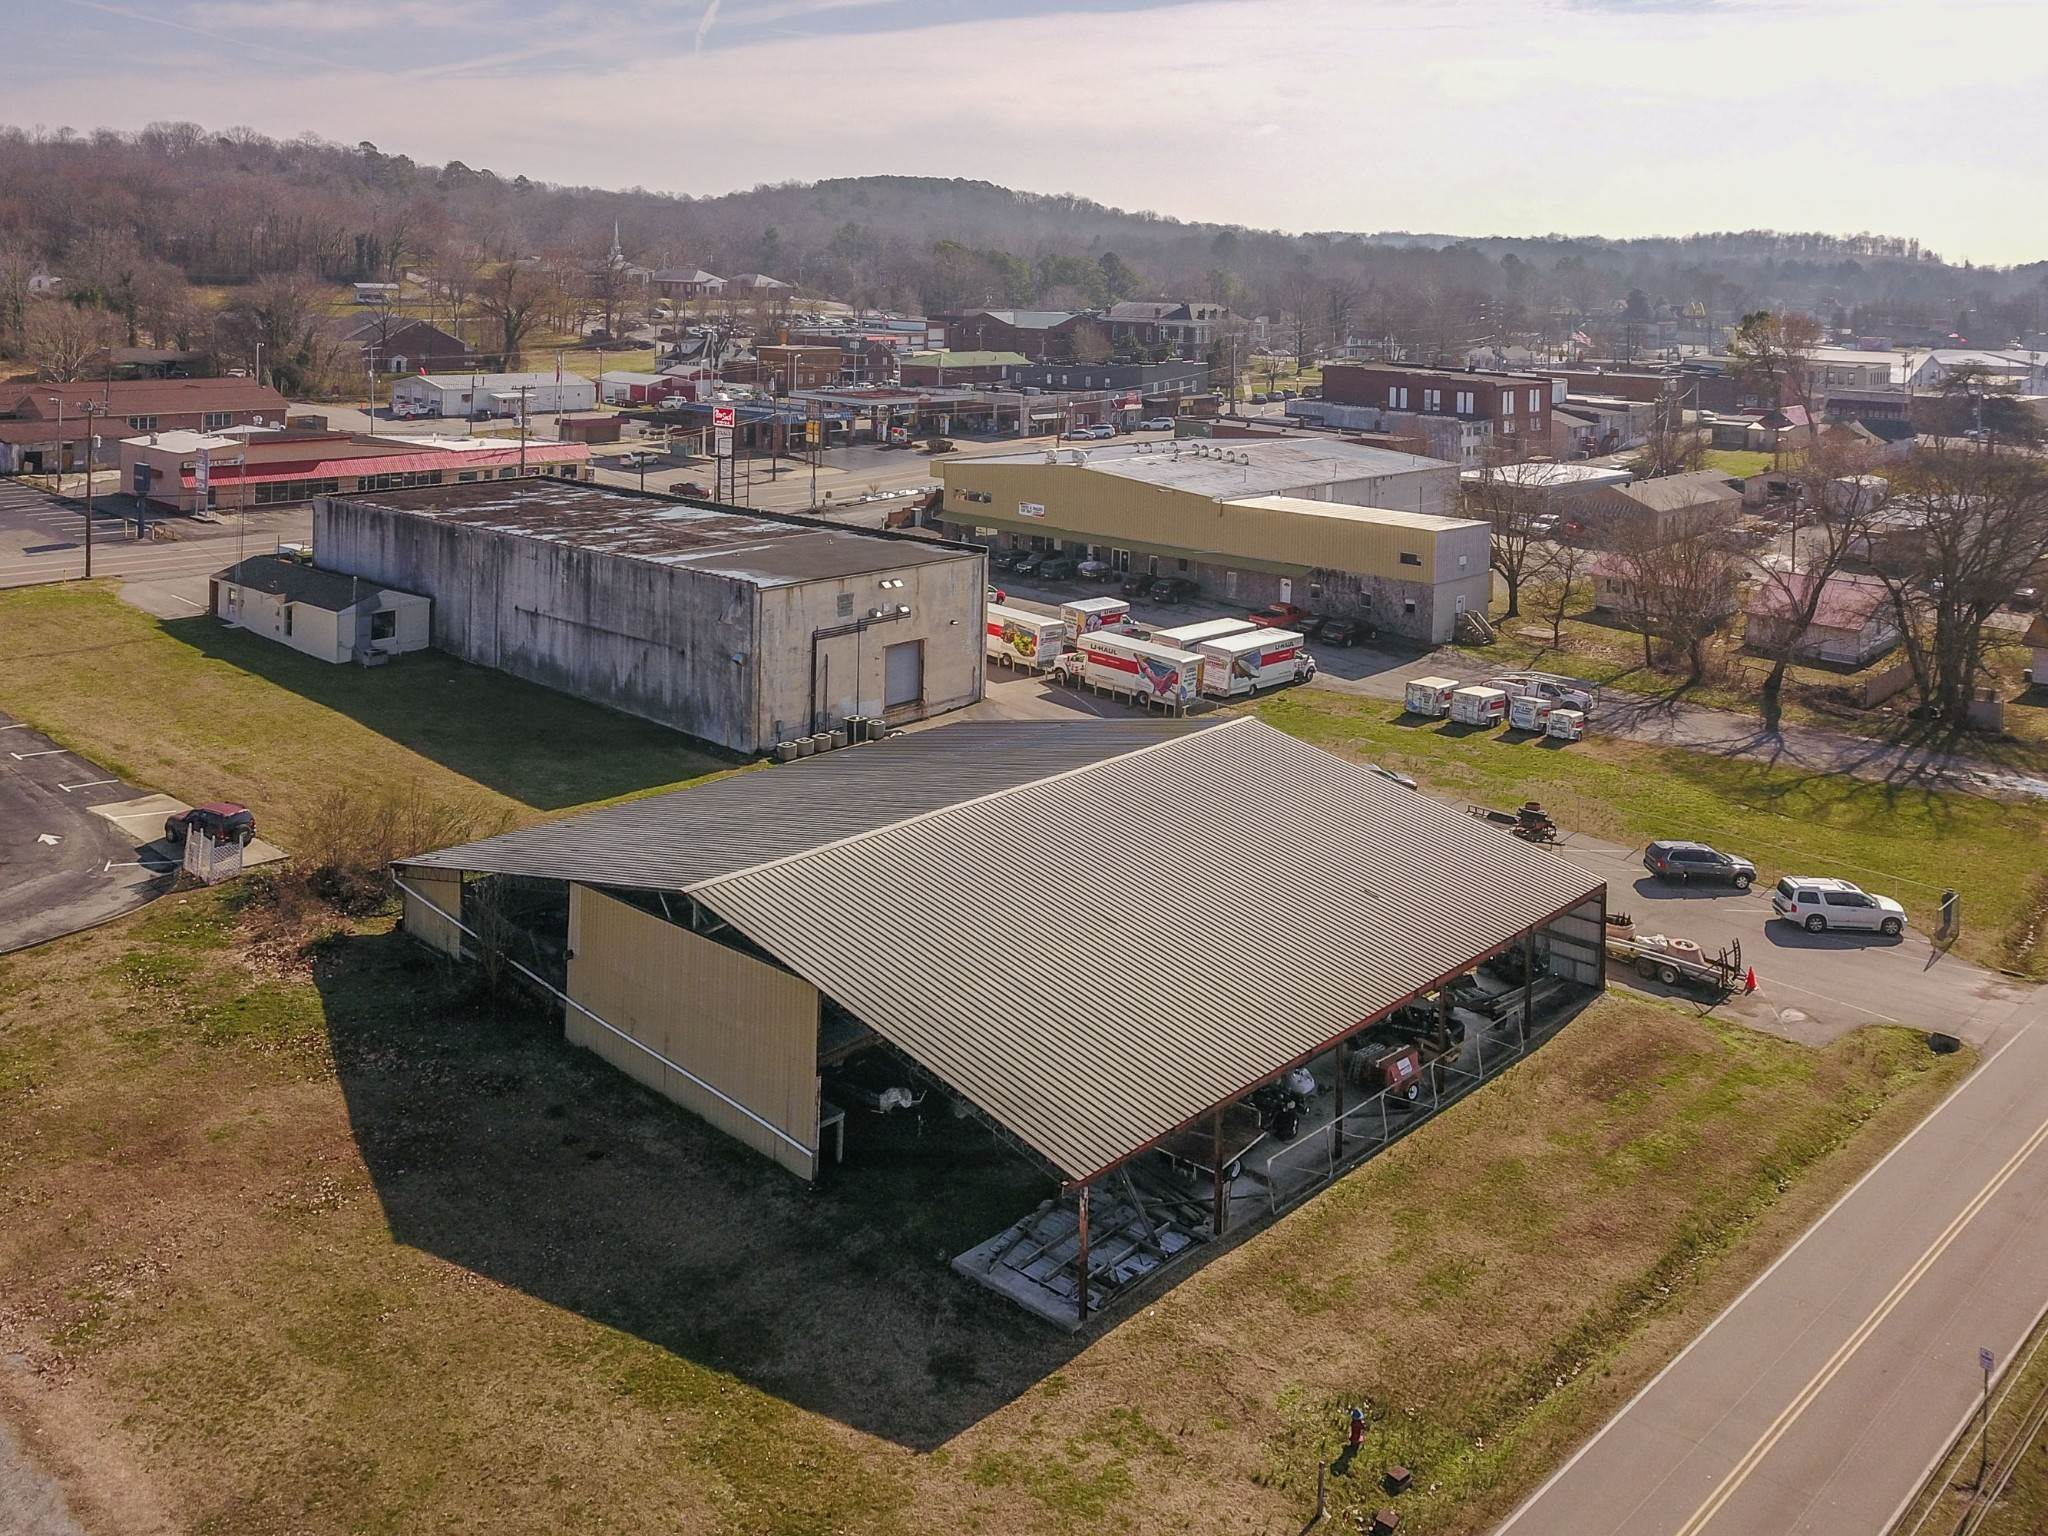 Commercial for Sale at 208 N. Main Street Ashland City, Tennessee 37015 United States